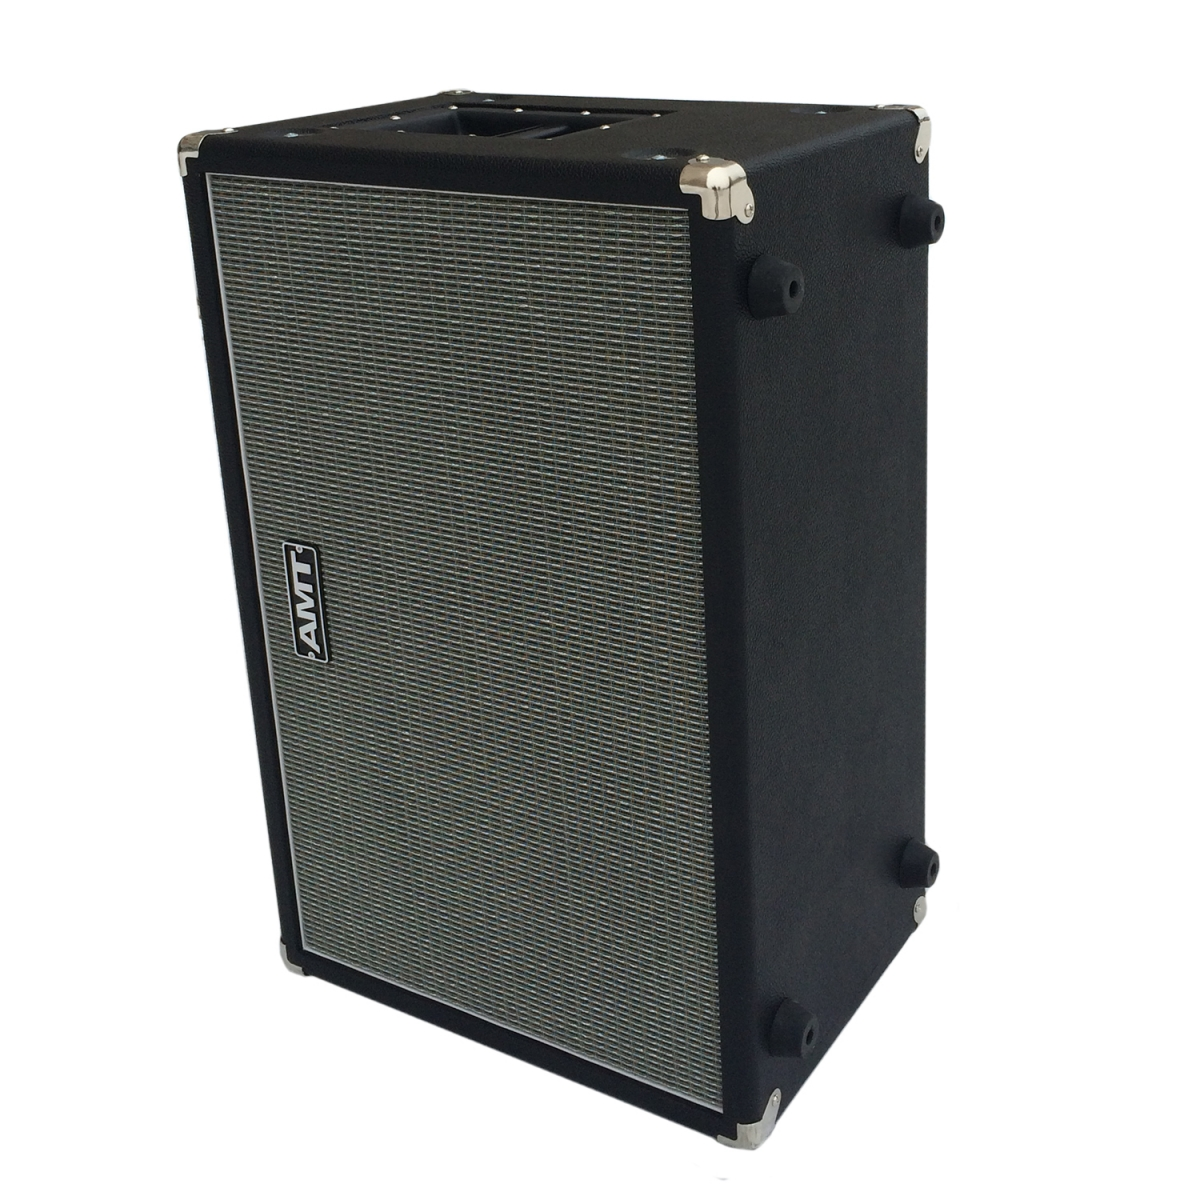 from speaker mini cabinet size in hotone guitar item nano sports legacy on inch micro entertainment parts cab accessories